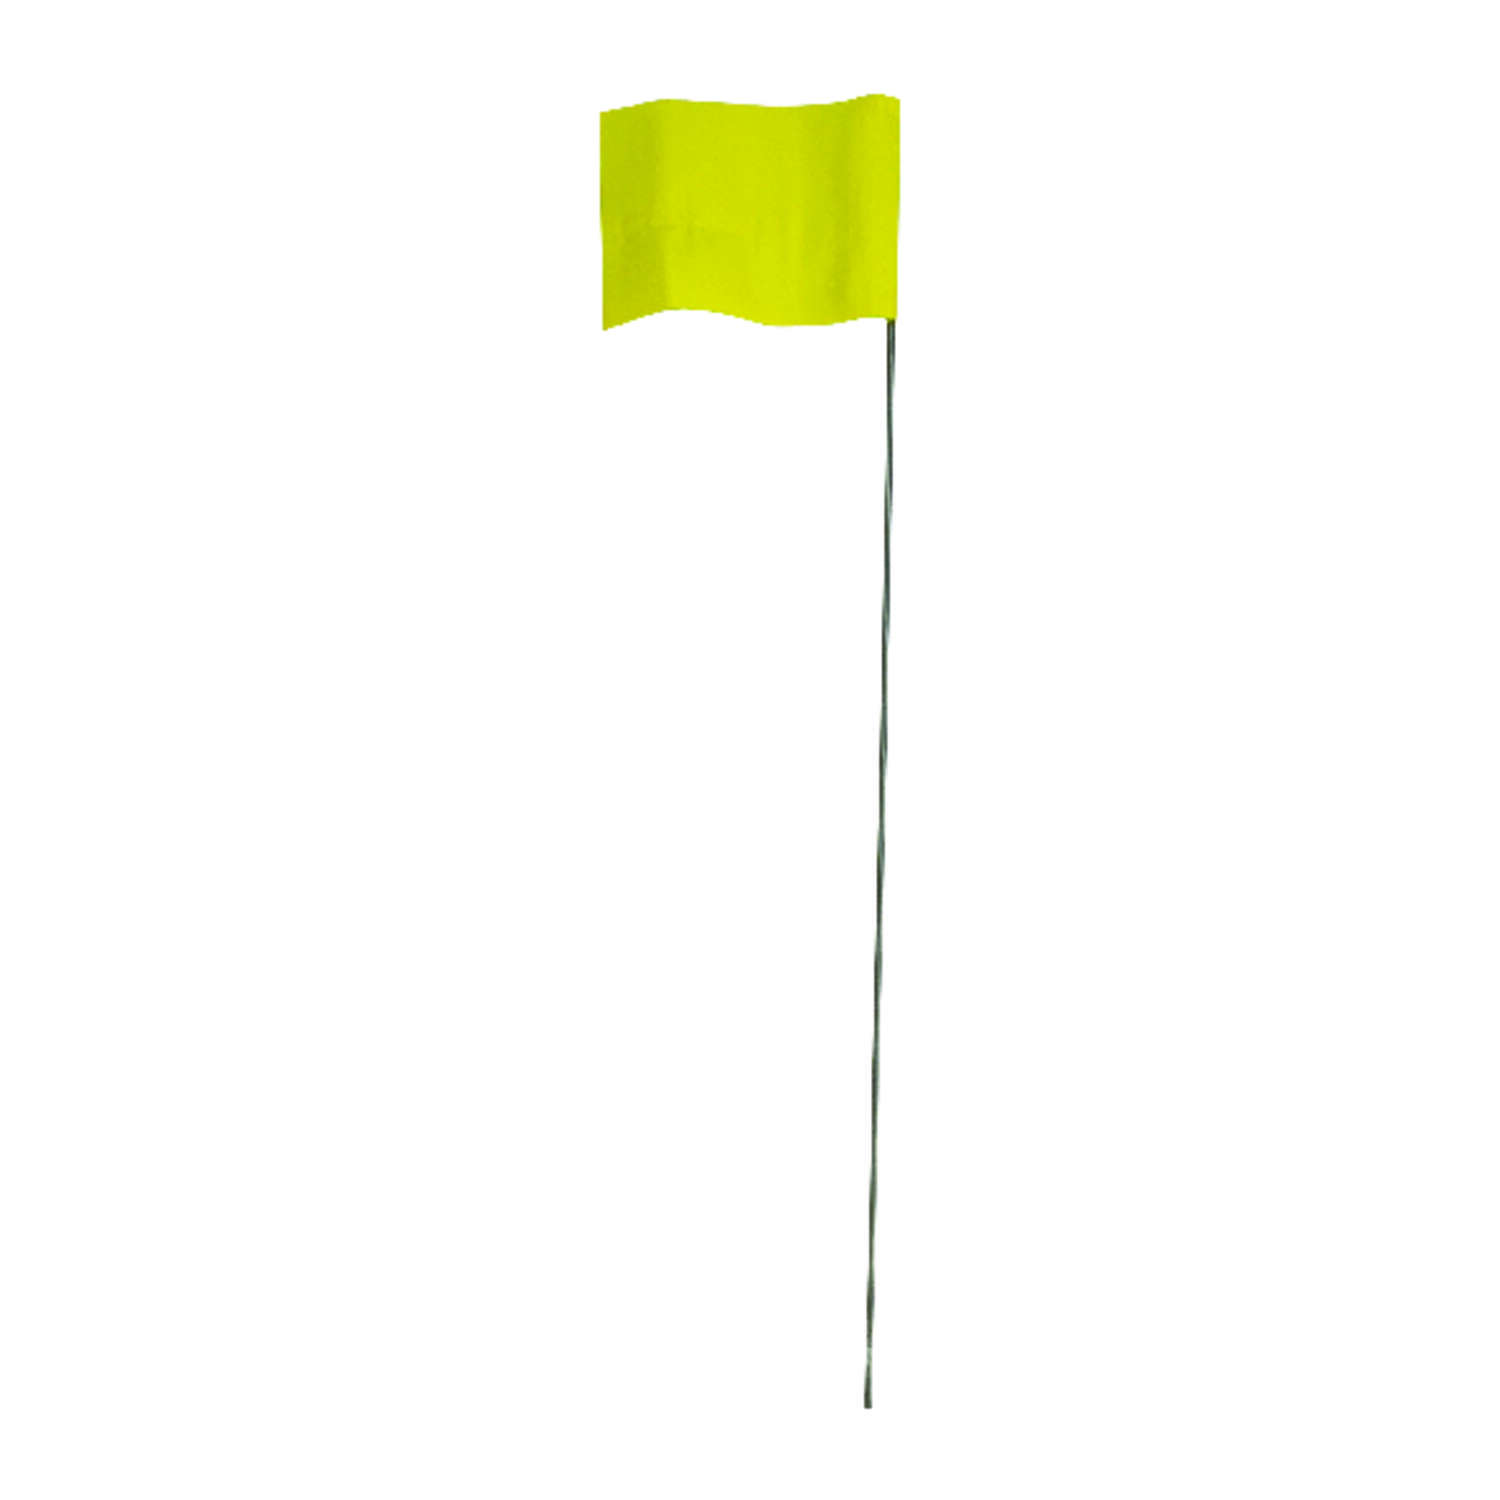 C.H. Hanson 21 in. Yellow Marking Flags Polyvinyl 100 pk